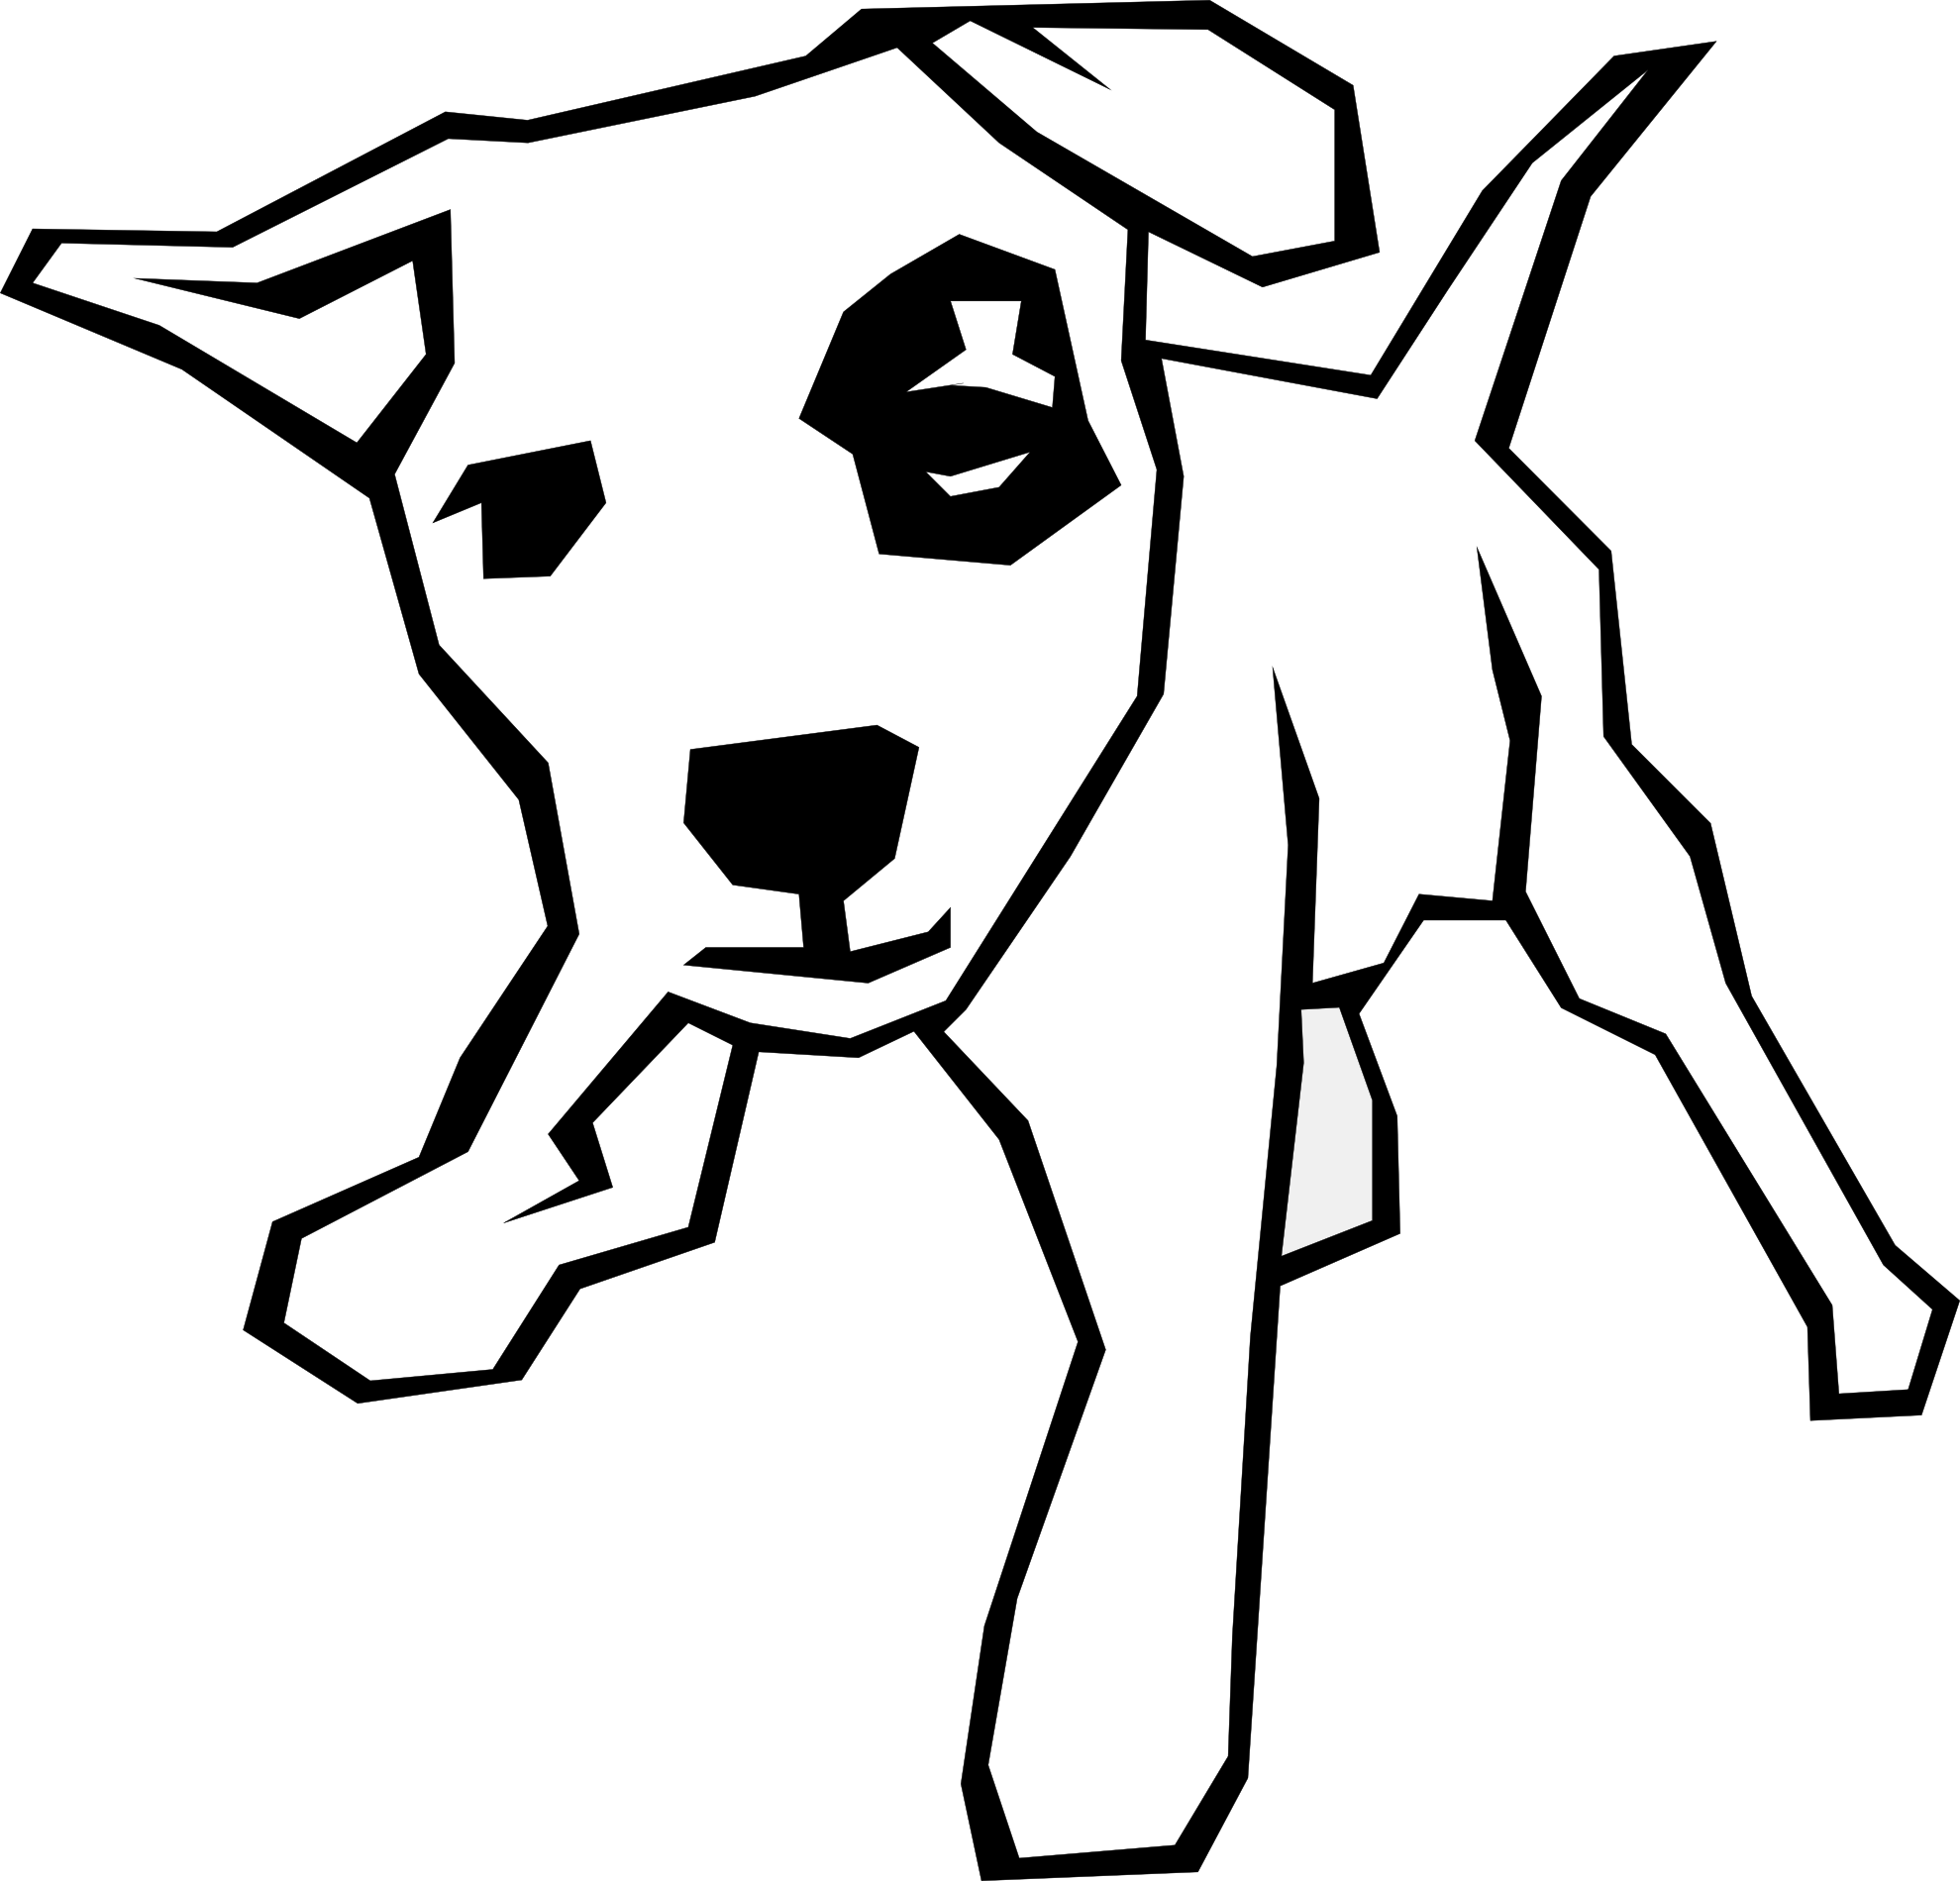 Dog picture clipart png black and white download Dog Face Clip Art Black And White | Clipart Panda - Free Clipart Images png black and white download